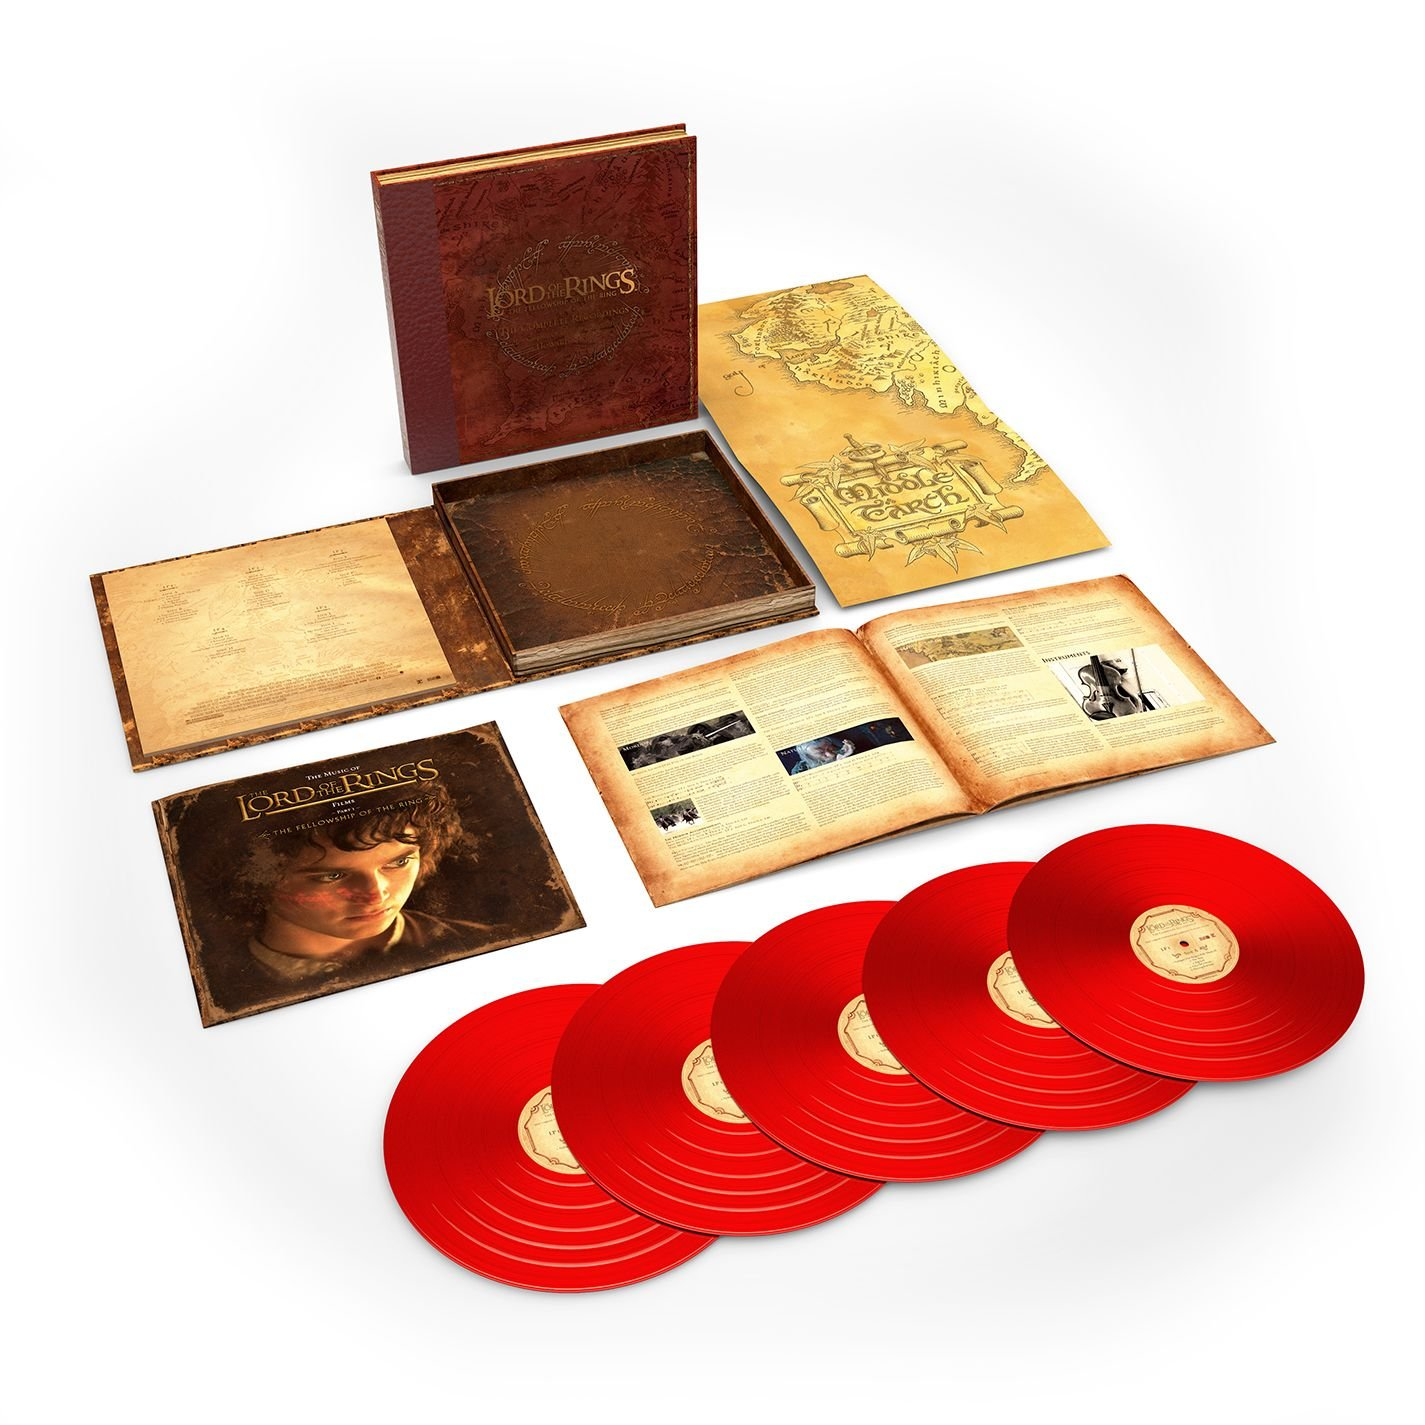 The Lord Of The Rings: The Fellowship Of The Ring - The Complete Recordings (5LP 180 Gram Red Vinyl) by Rhino/Warner Bros.